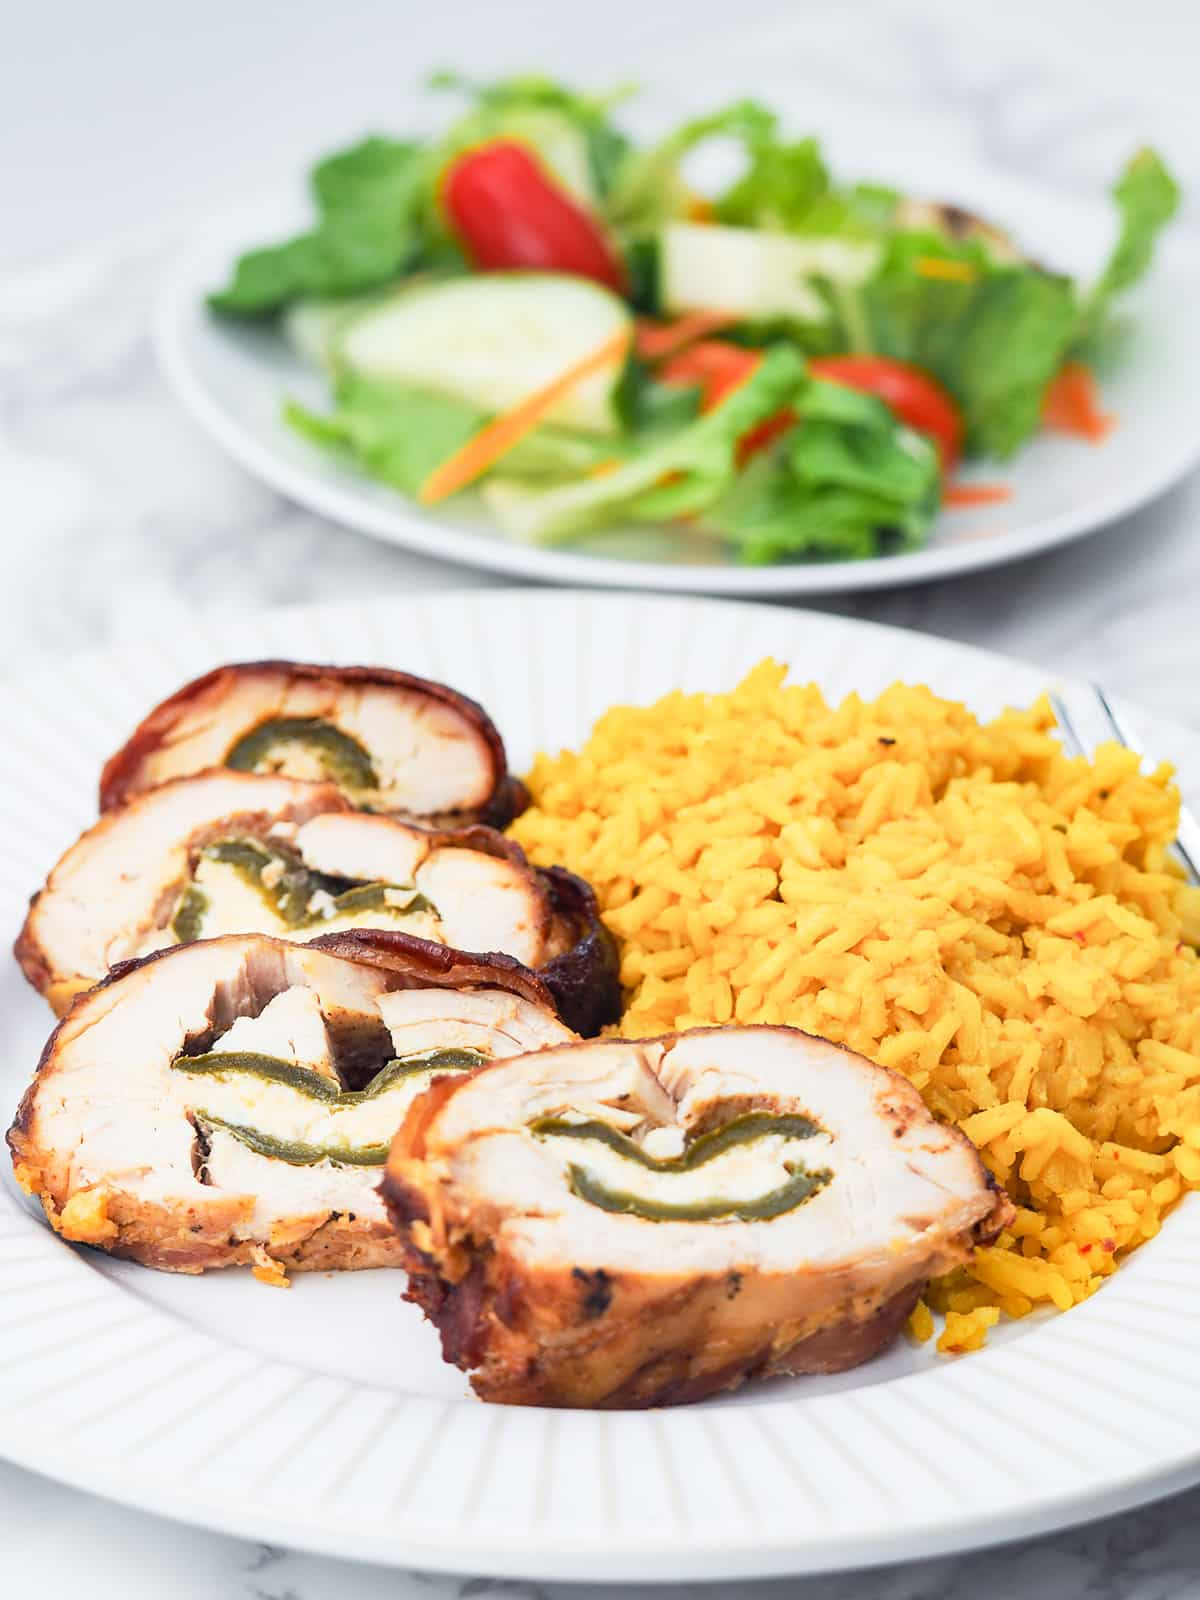 sliced jalapeno popper chicken on plate with yellow rice and vegetables with salad plate in background